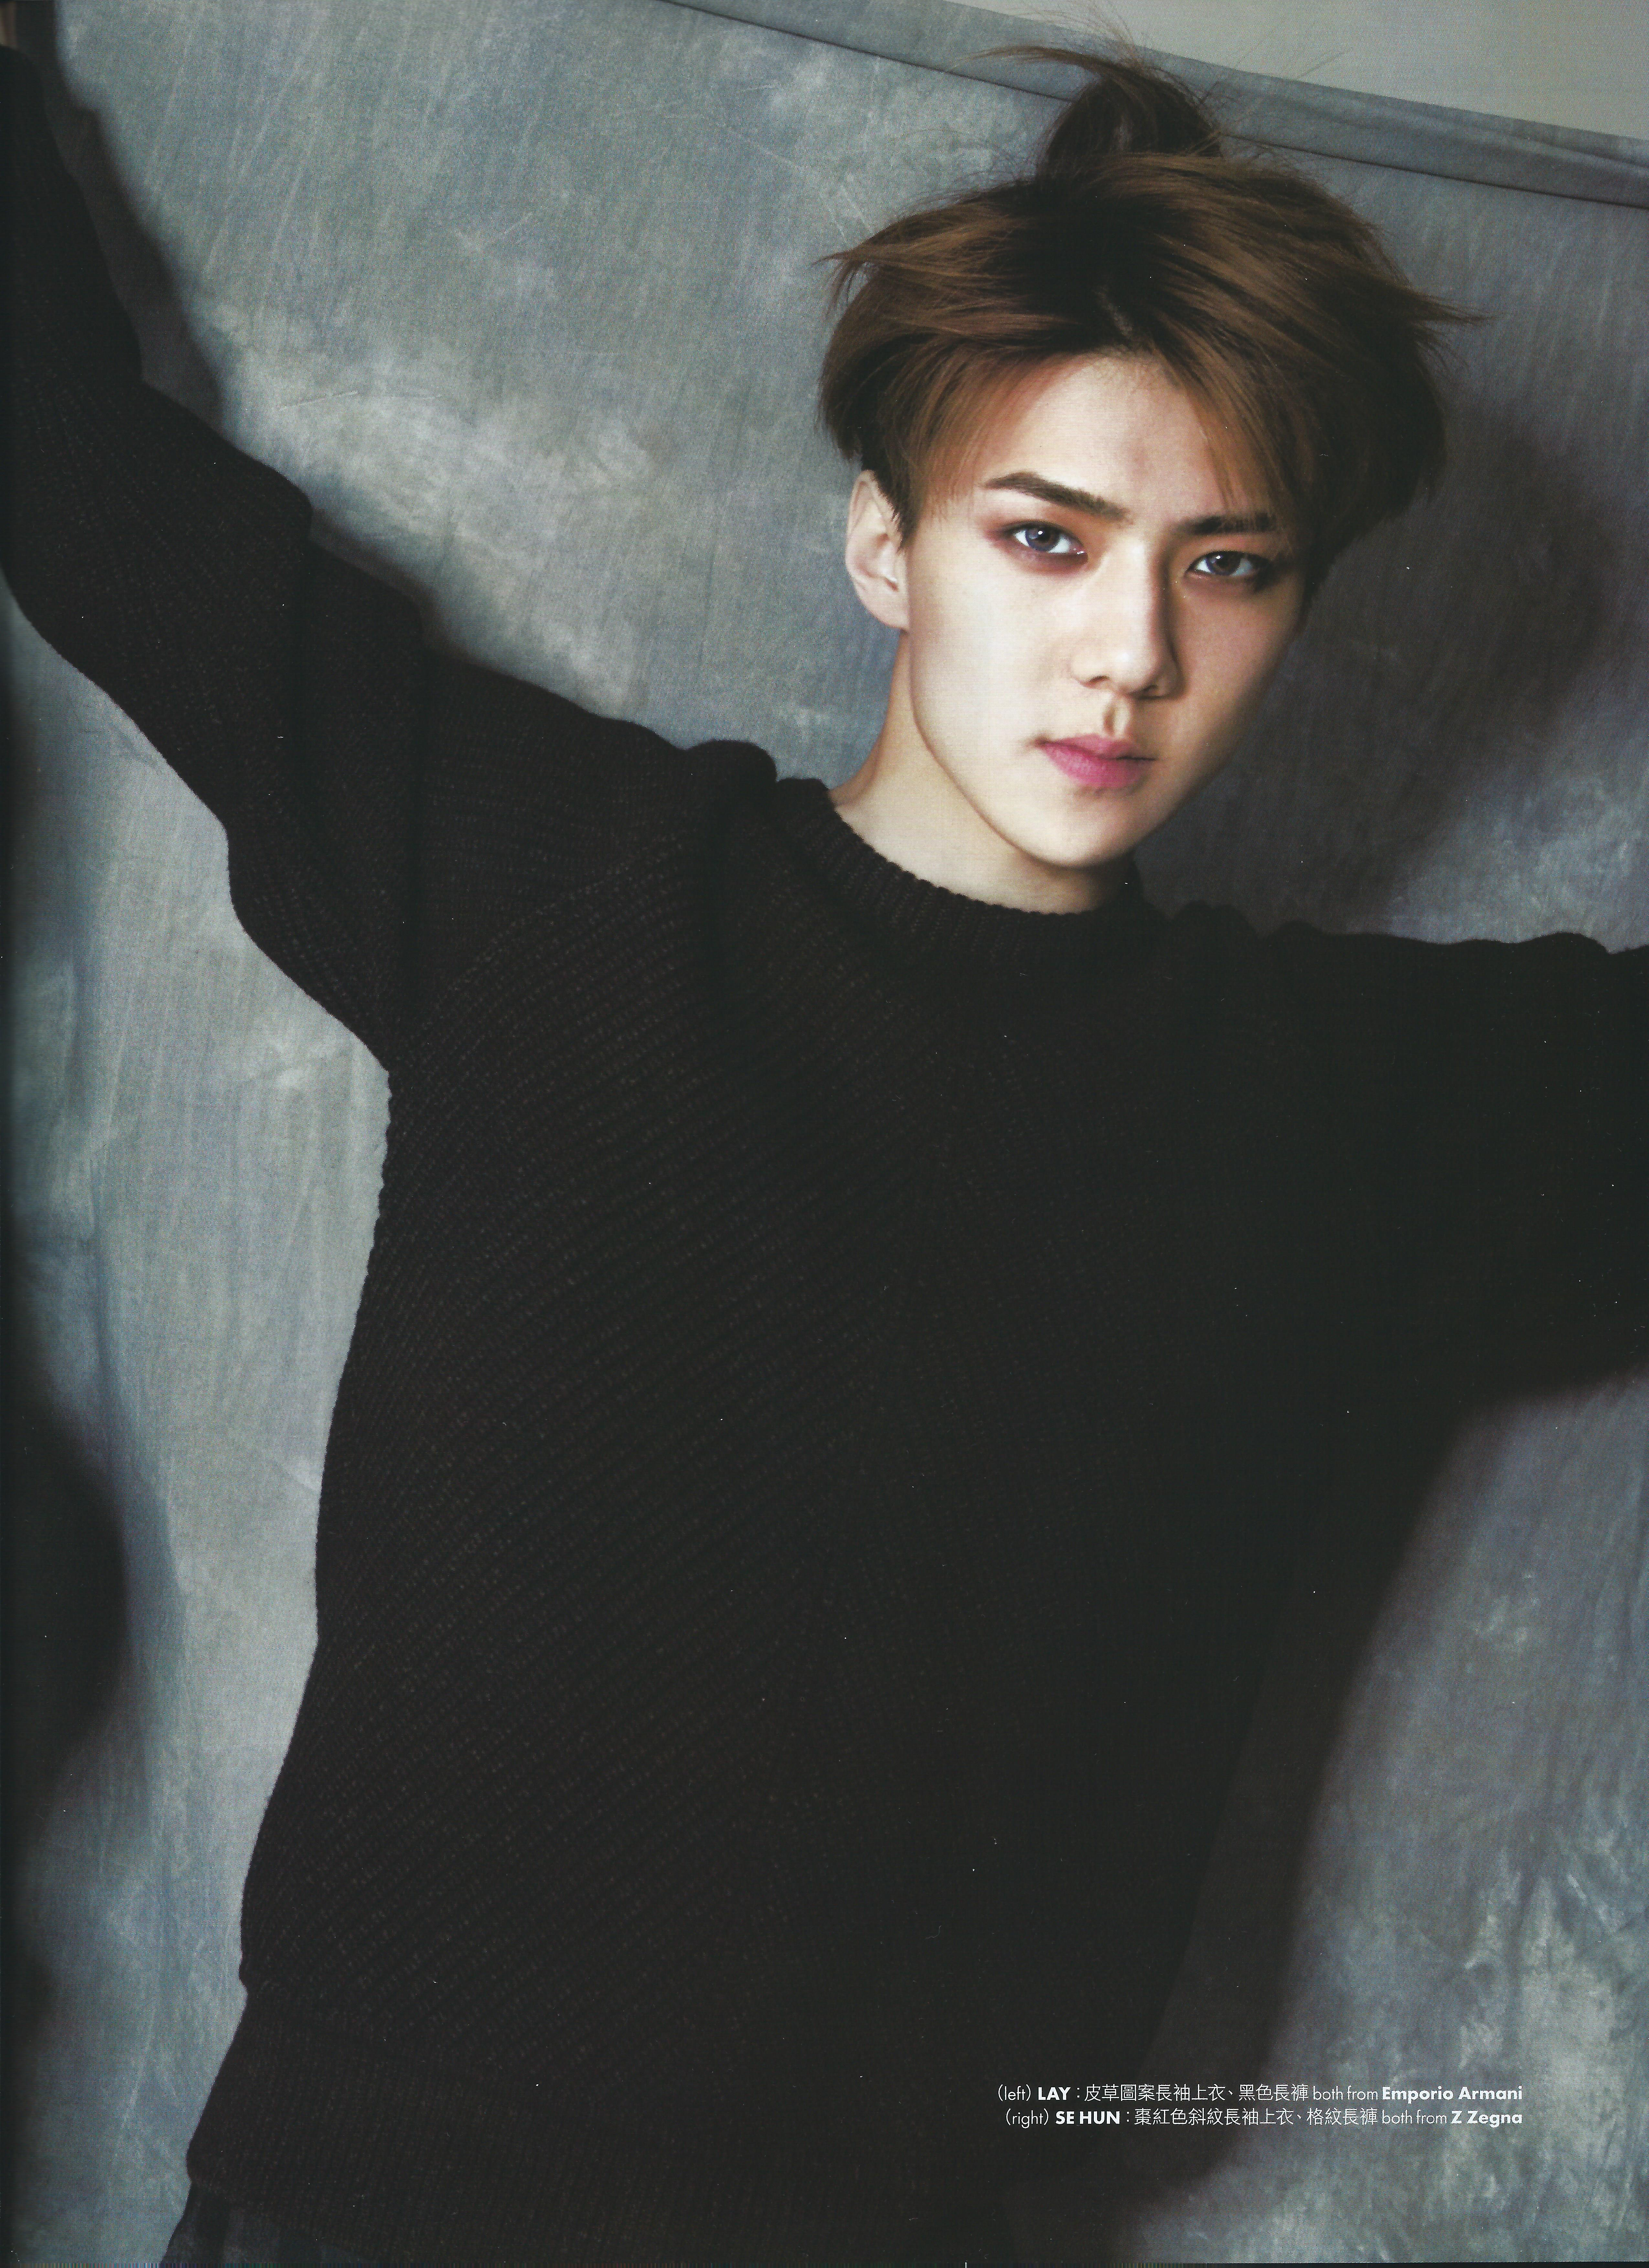 Xiumin was born in Guri Gyeonggi Province South Korea on March 26 1990 He was a student at Catholic Kwandong University where he attended a seminar and gave a presentation for students in Applied Music Xiumin learned martial arts and has a black belt in Kendo and Taekwondo He also trained in Wushu and Fencing